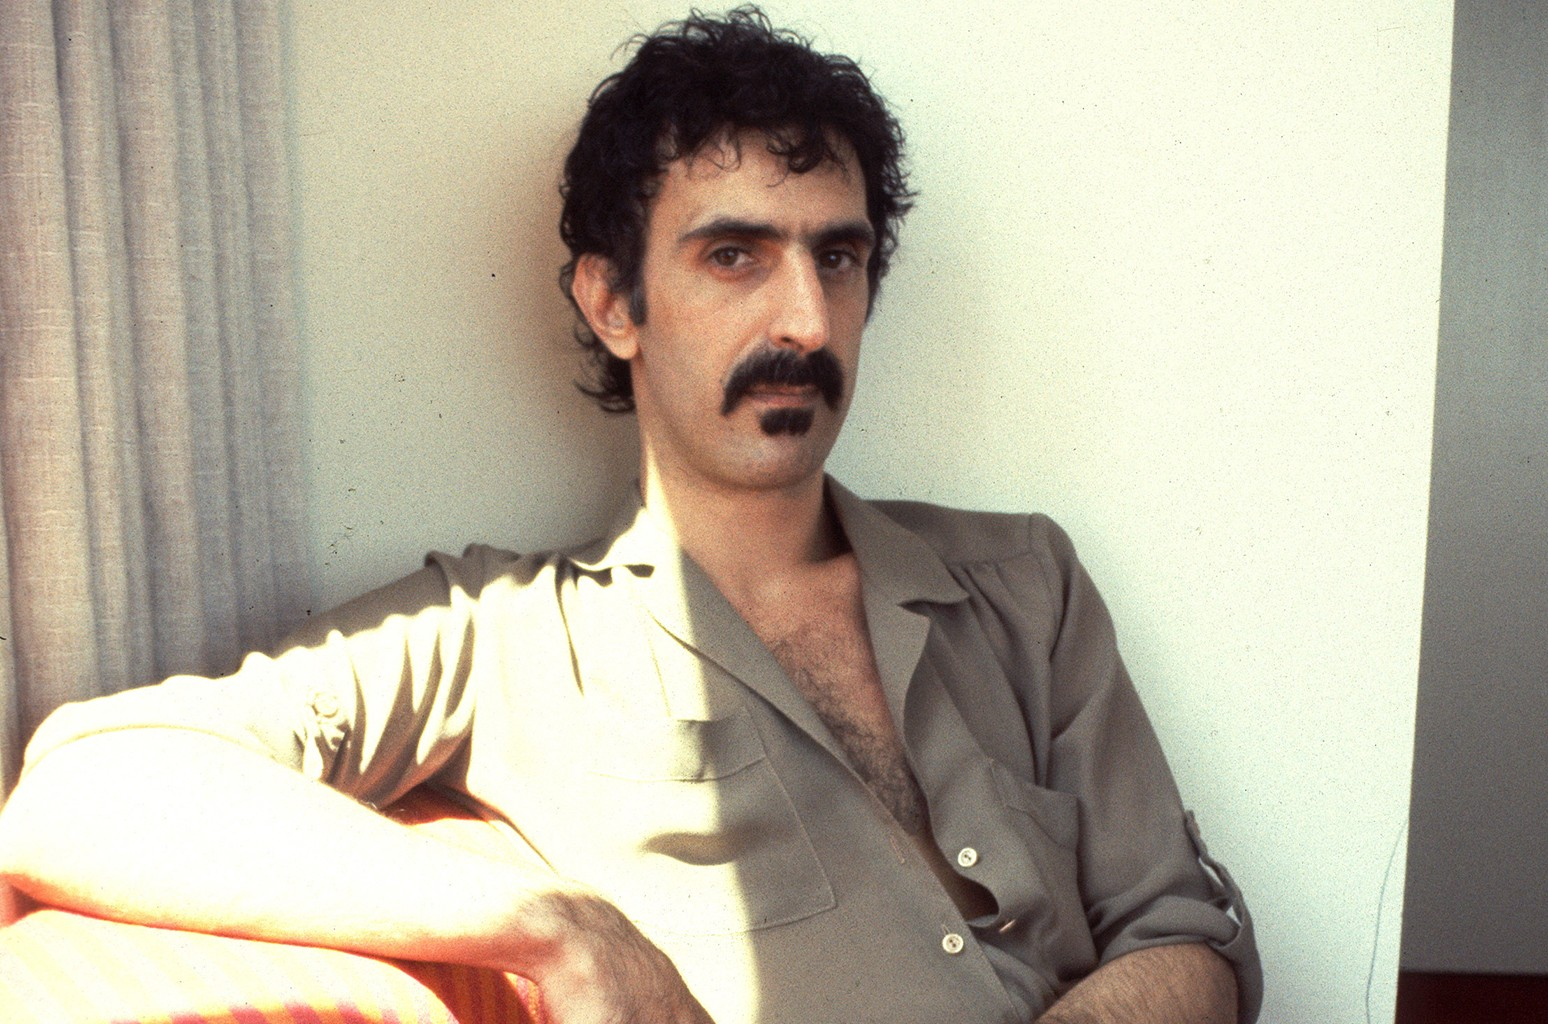 Frank Zappa photographed in Laurel Canyon